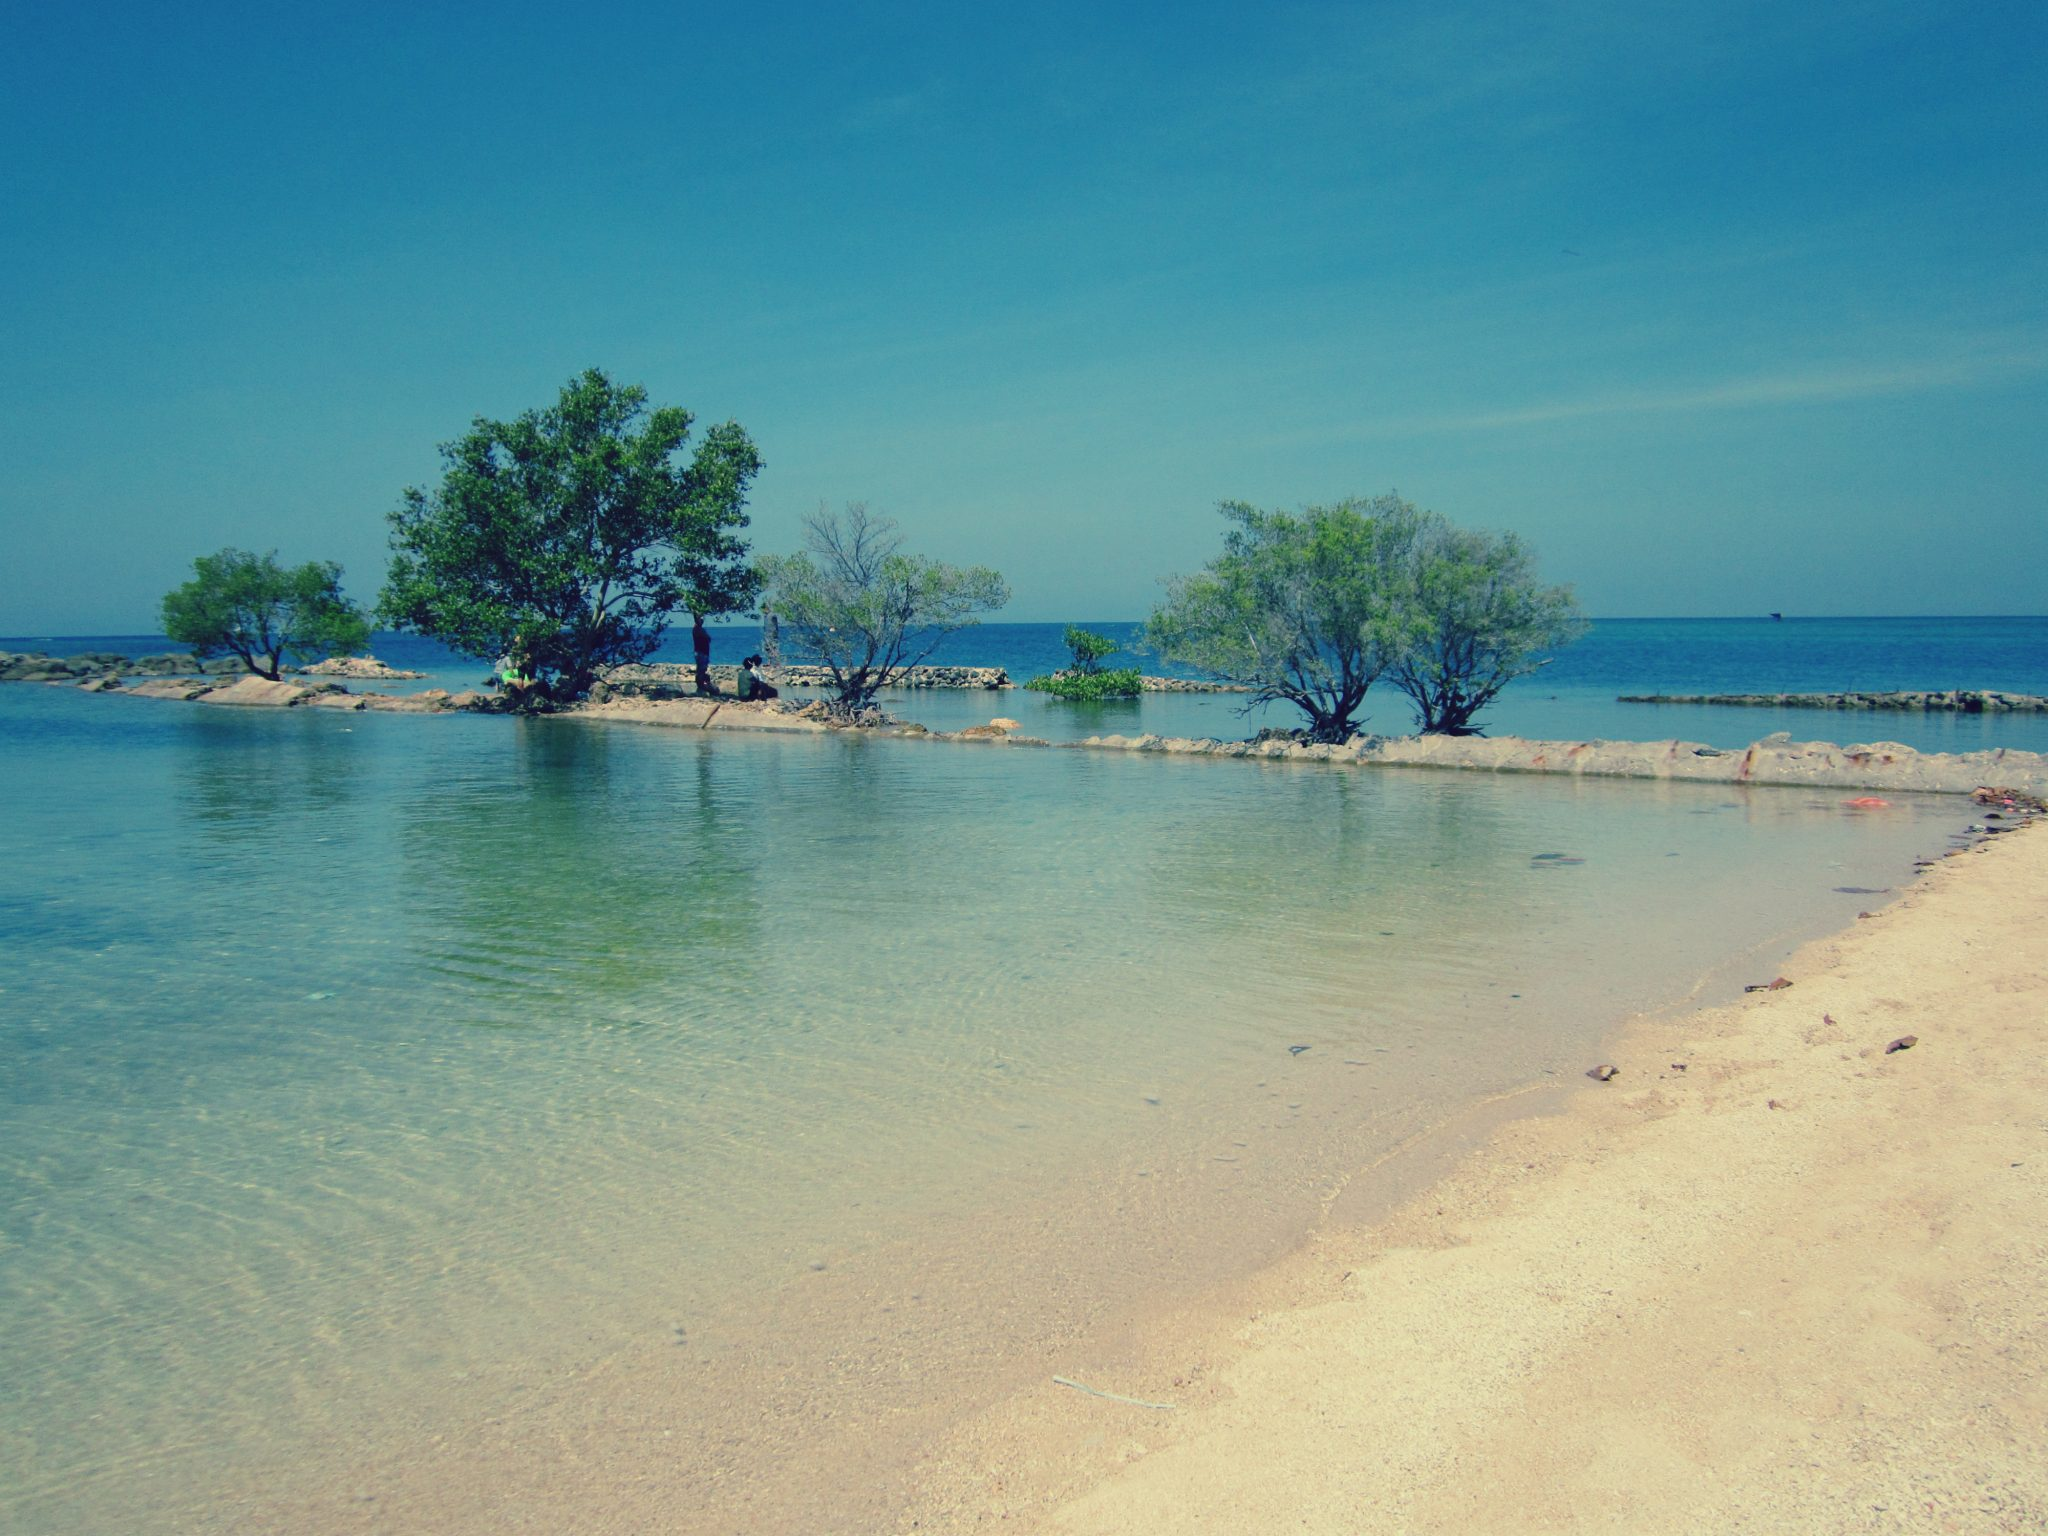 The beach is just small that you can explore it for one day